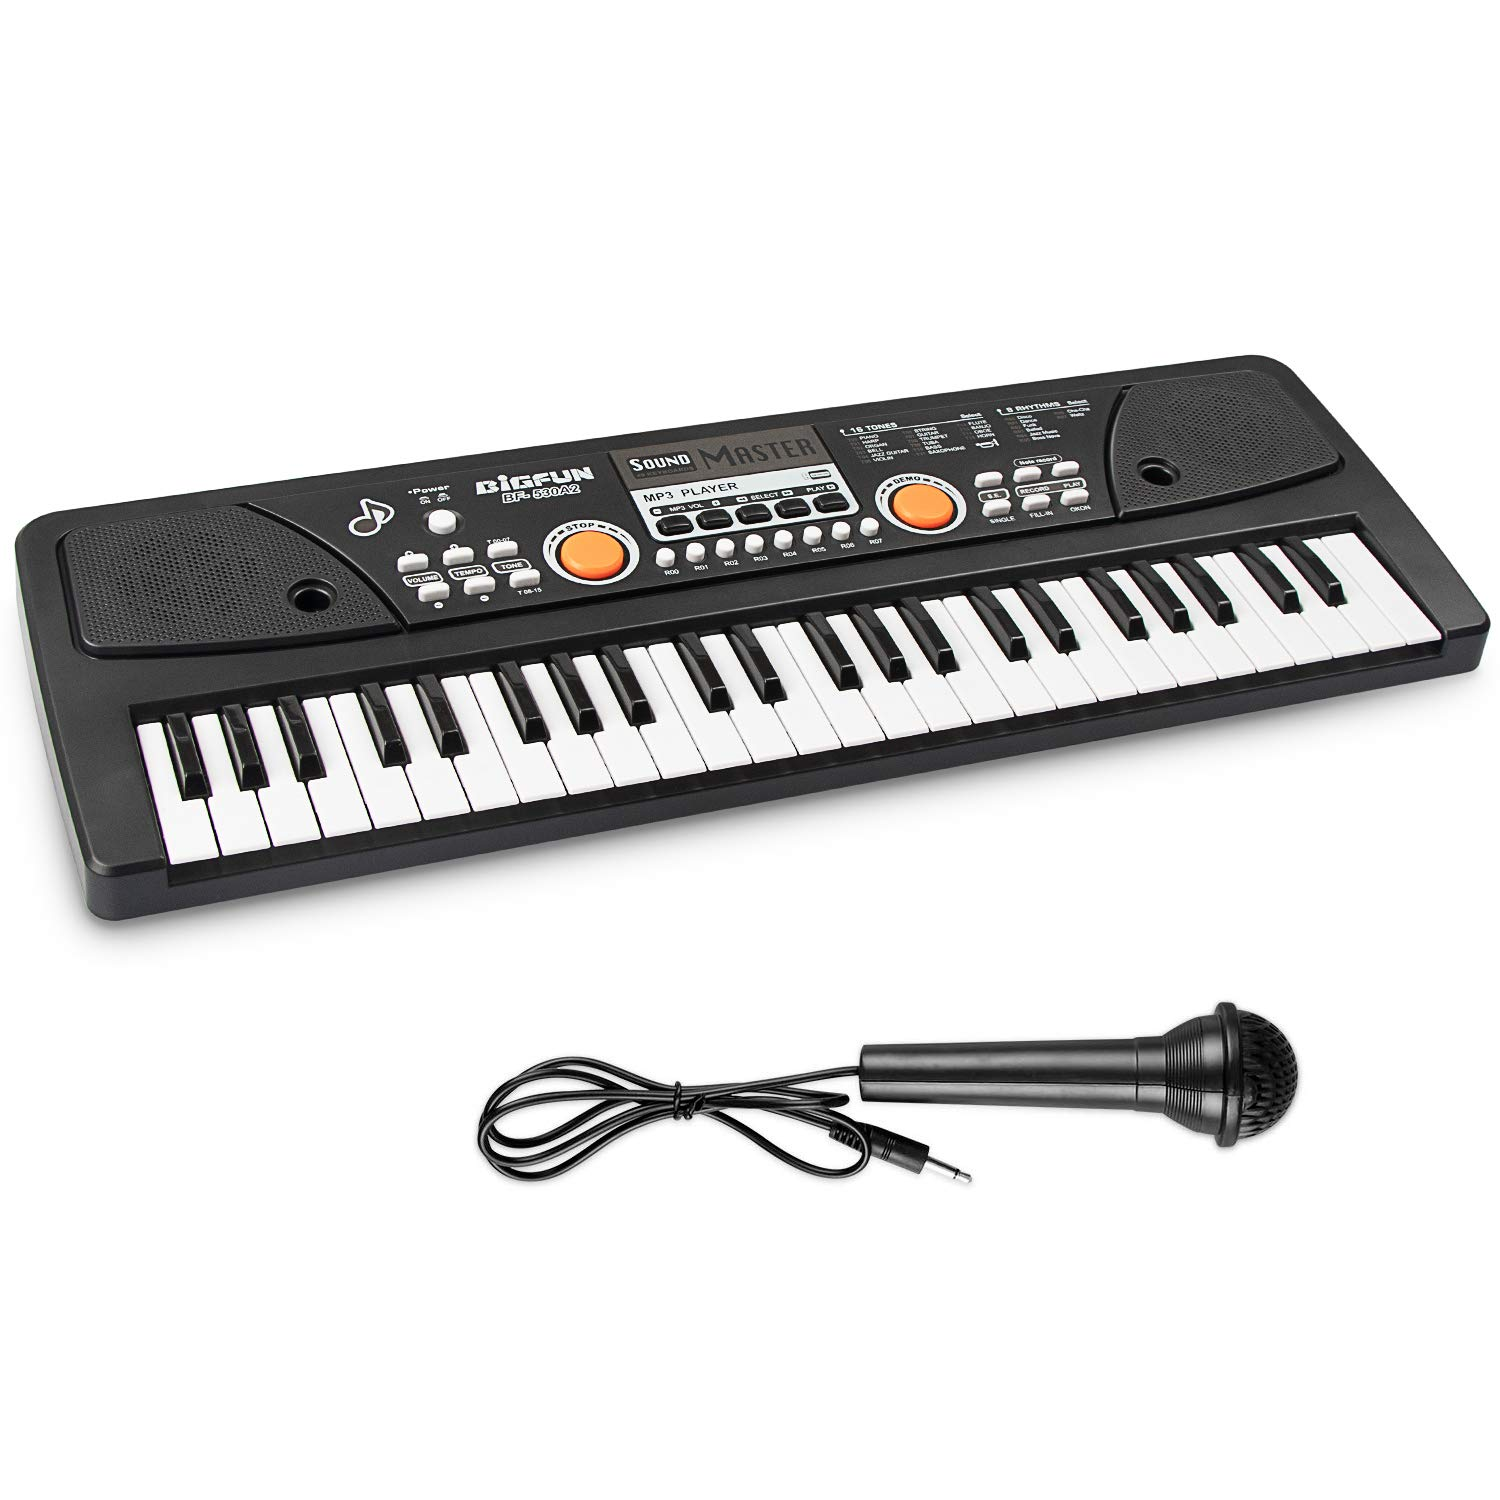 AIMEDYOU 49 Keys Piano Keyboard for Kids Multifunction Portable Piano Electronic Keyboard Music Instrument Birthday Xmas Day Gifts for Kids by AIMEDYOU (Image #2)